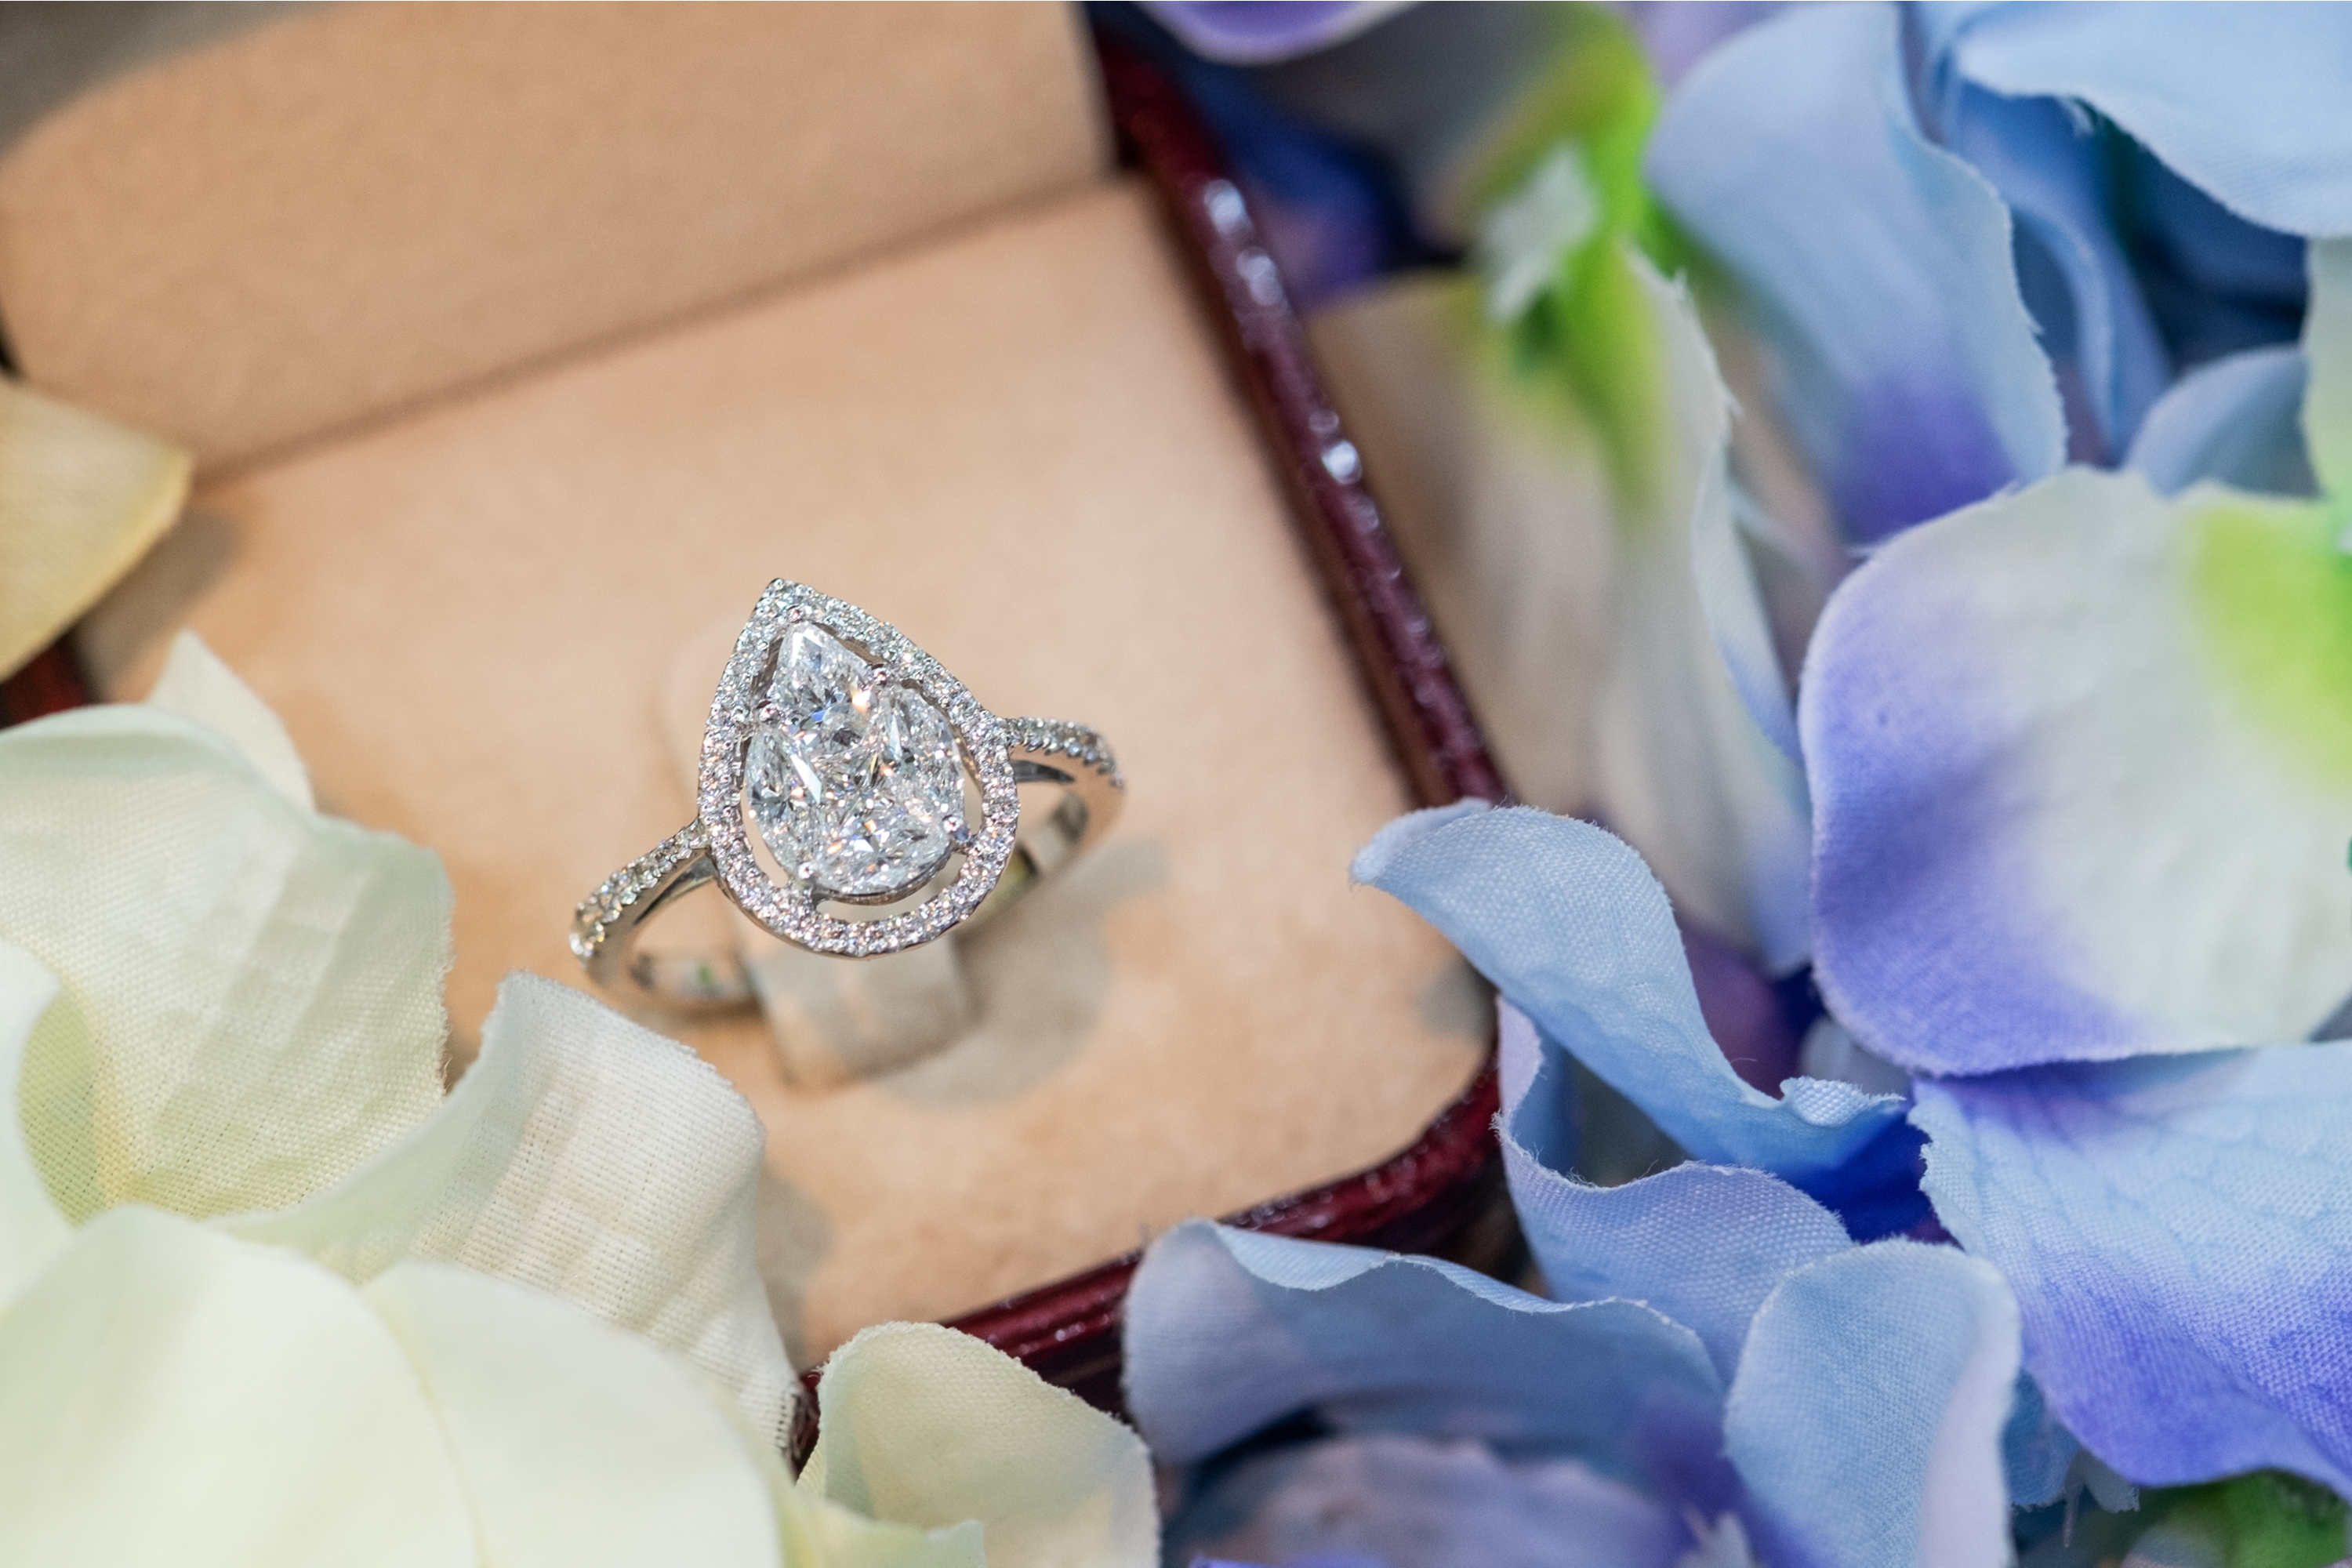 If you're looking for the perfect engaagement rights look no further than a seamless halo engagement ring